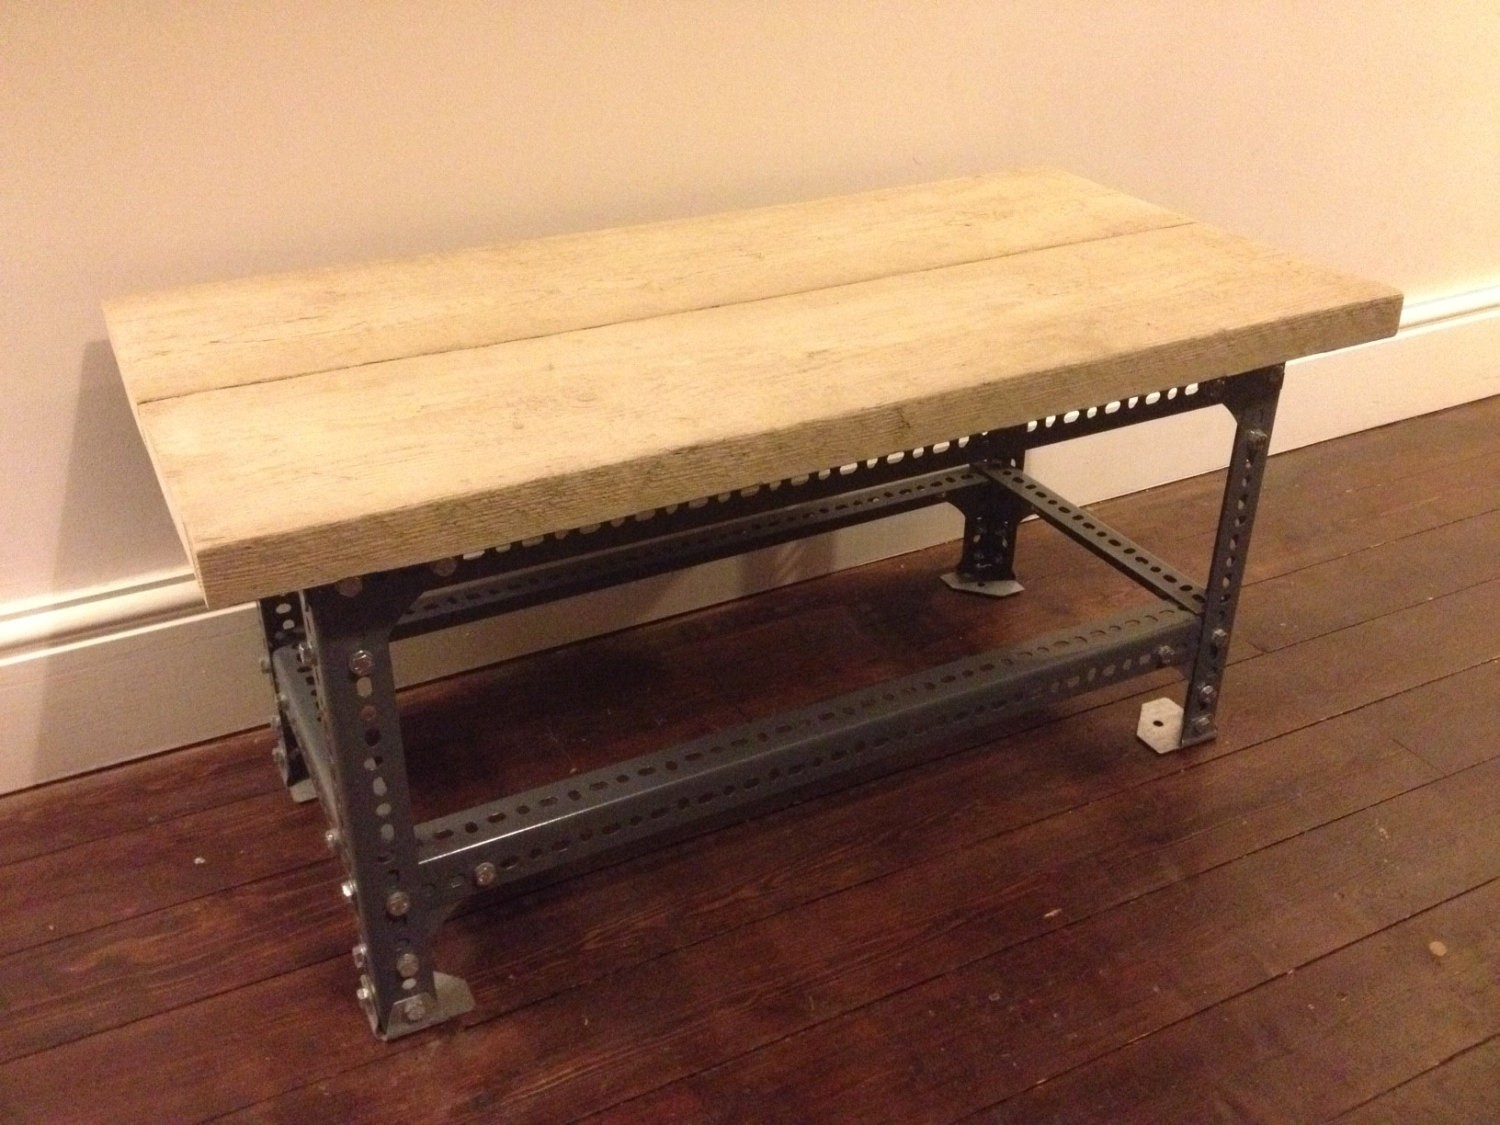 Dexion Slotted Angle Coffee Table (STEELWORK ONLY)